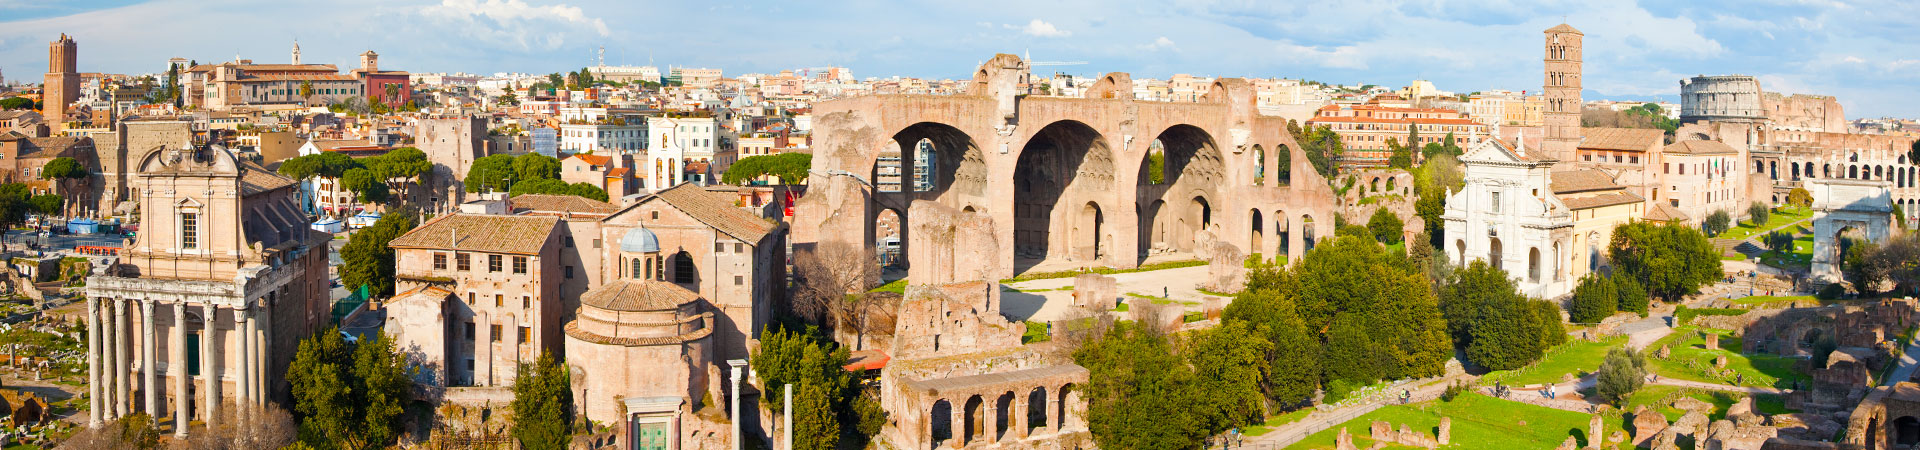 tours of roman forum and colosseum